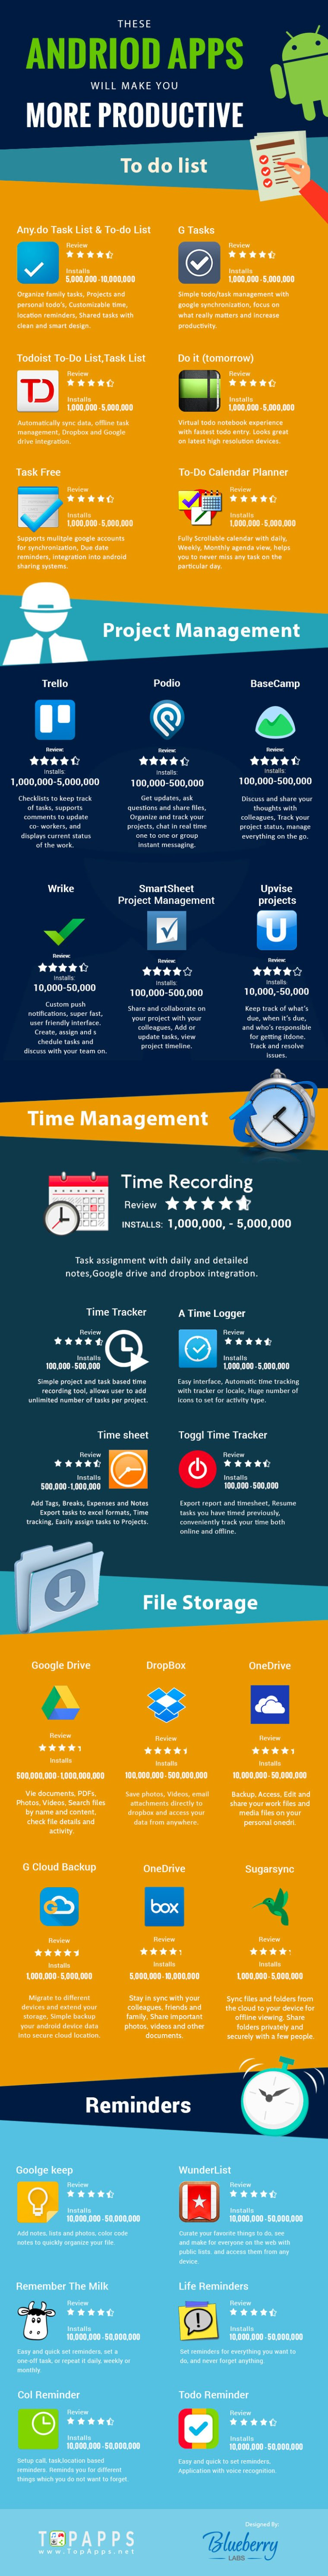 Top Android apps for productivity - infographic